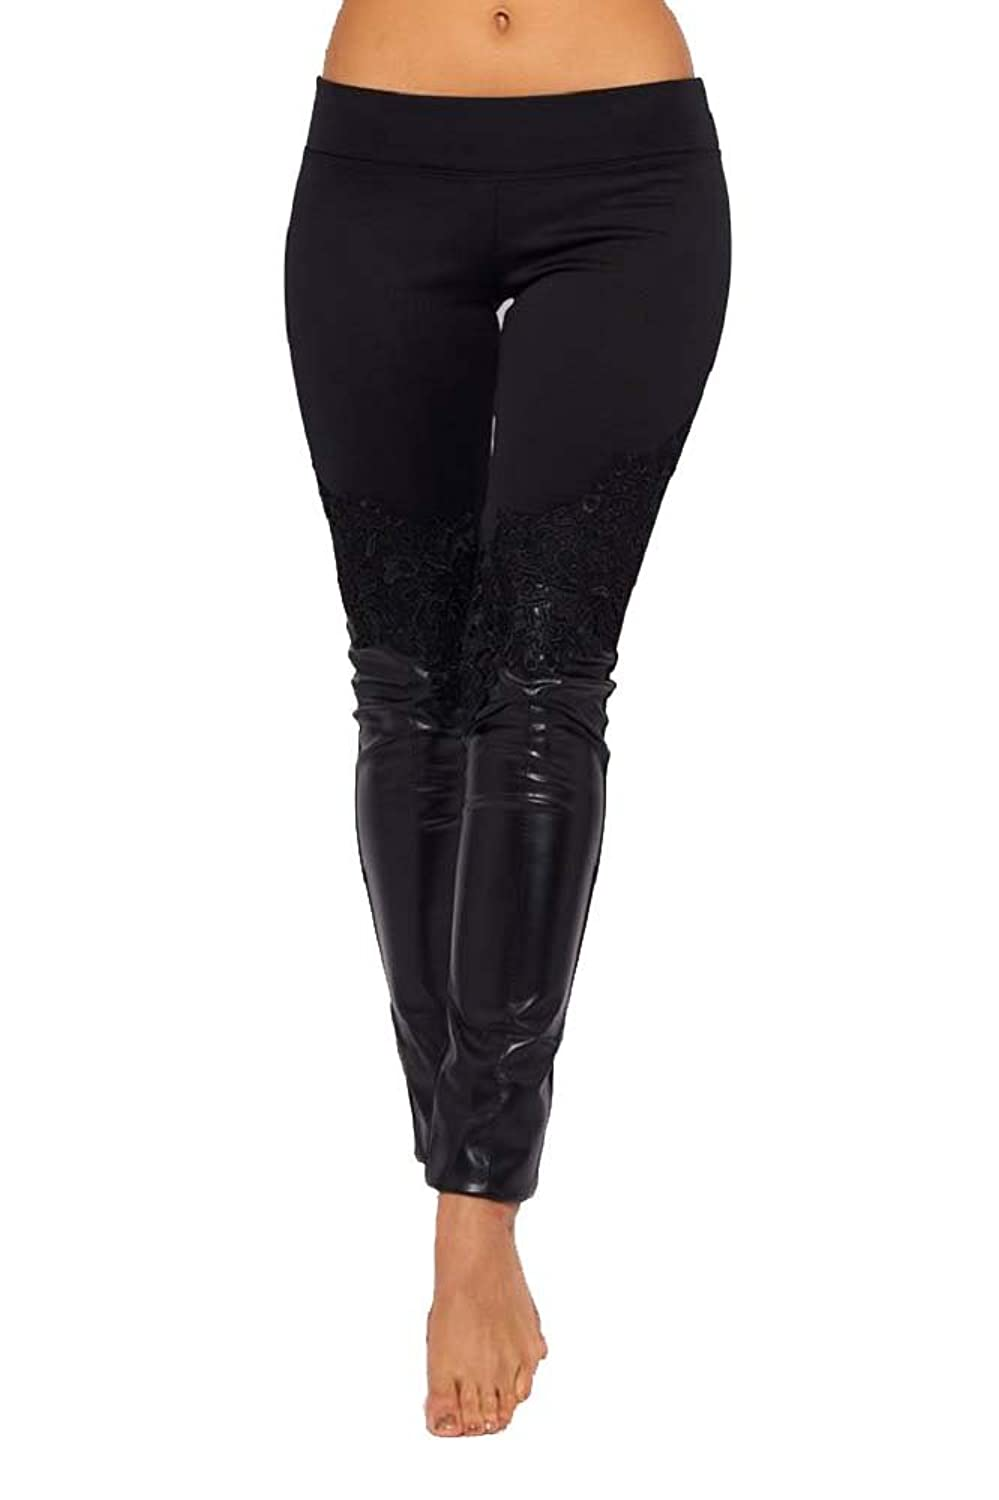 c9a2917fe37 Top 10 wholesale Black Leather Tights - Chinabrands.com